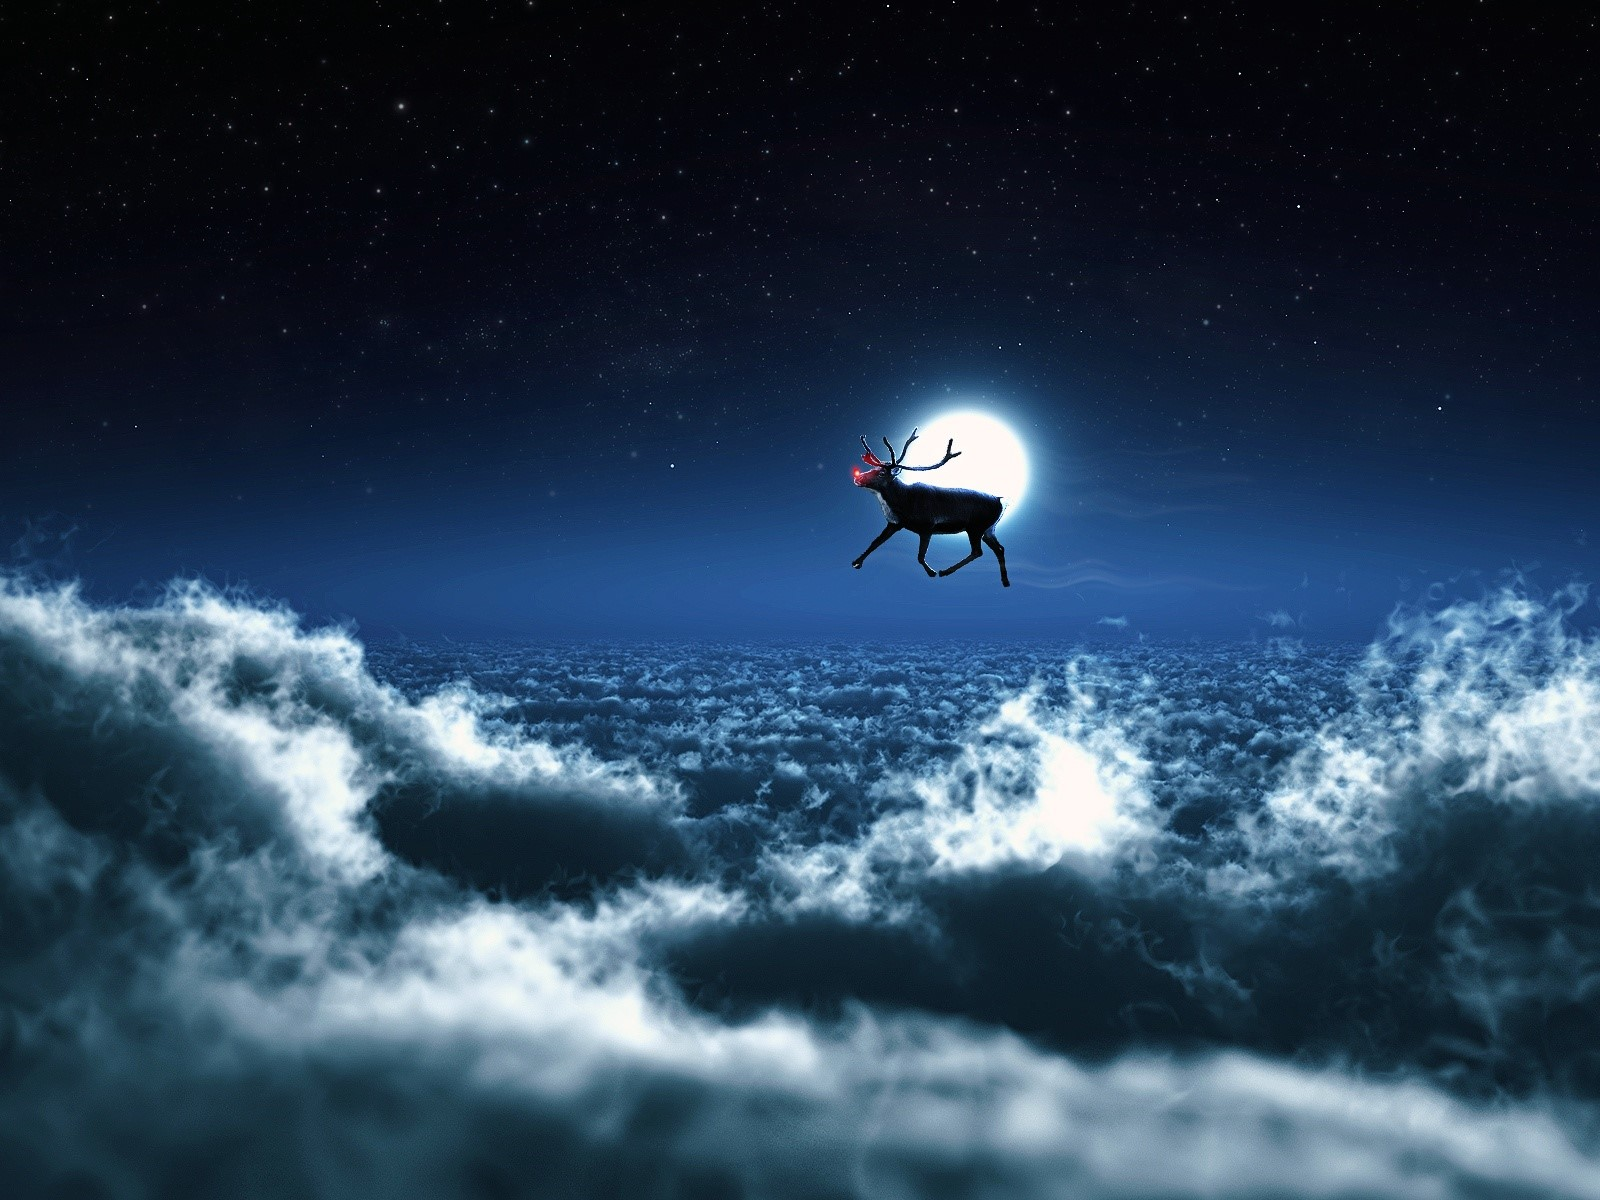 Wallpaper Santa's reindeer